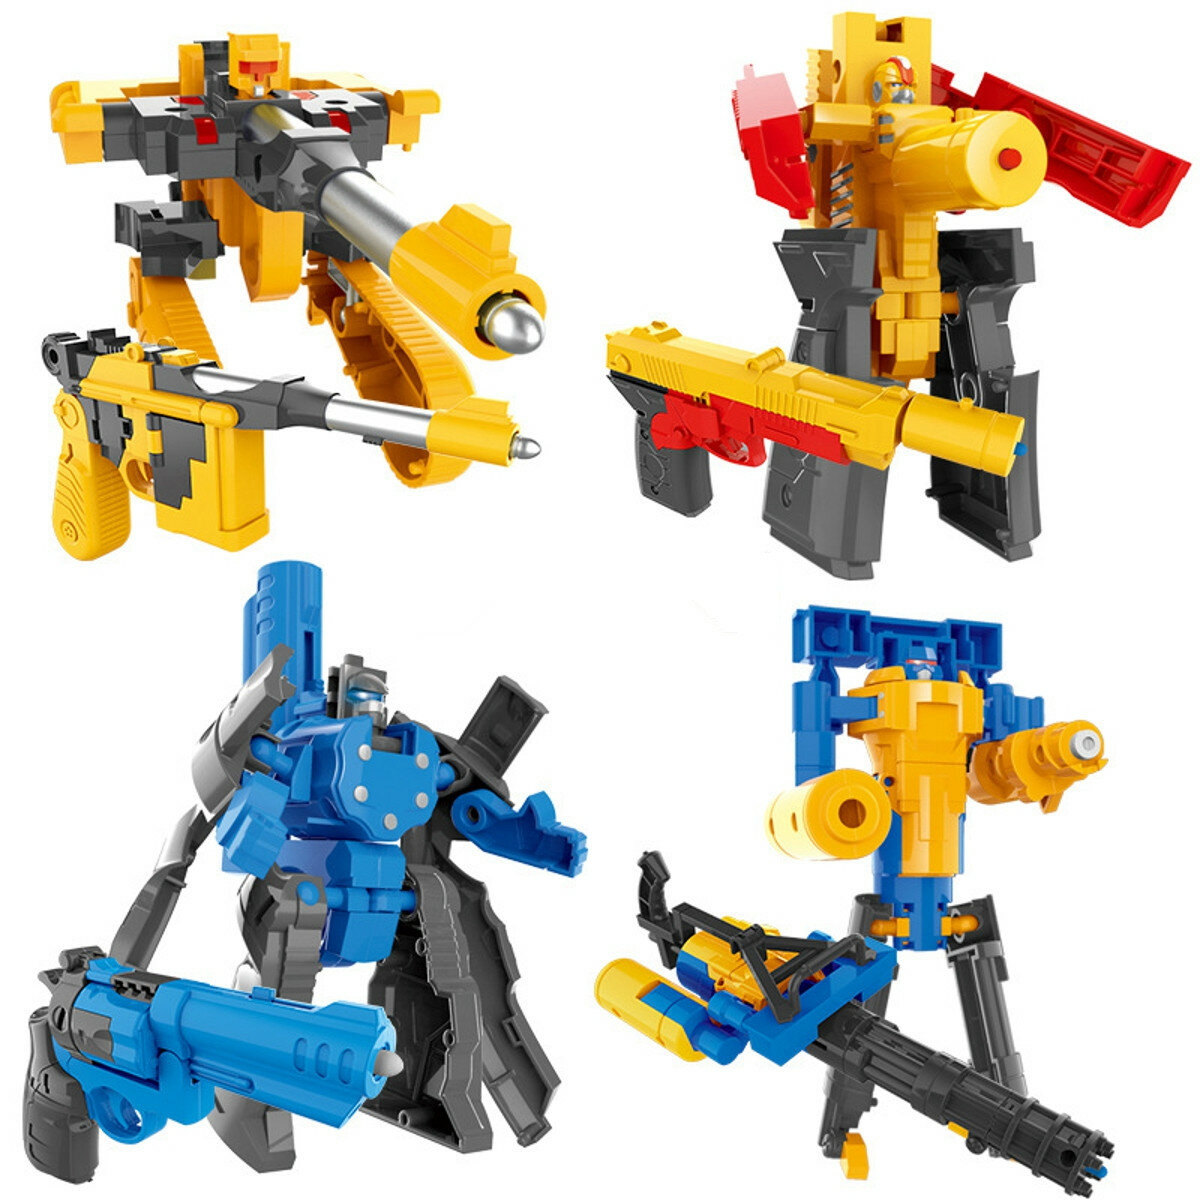 Children's Deformation Pistol Robot Toy Puzzle DIY Assembly Toy Christmas Gift